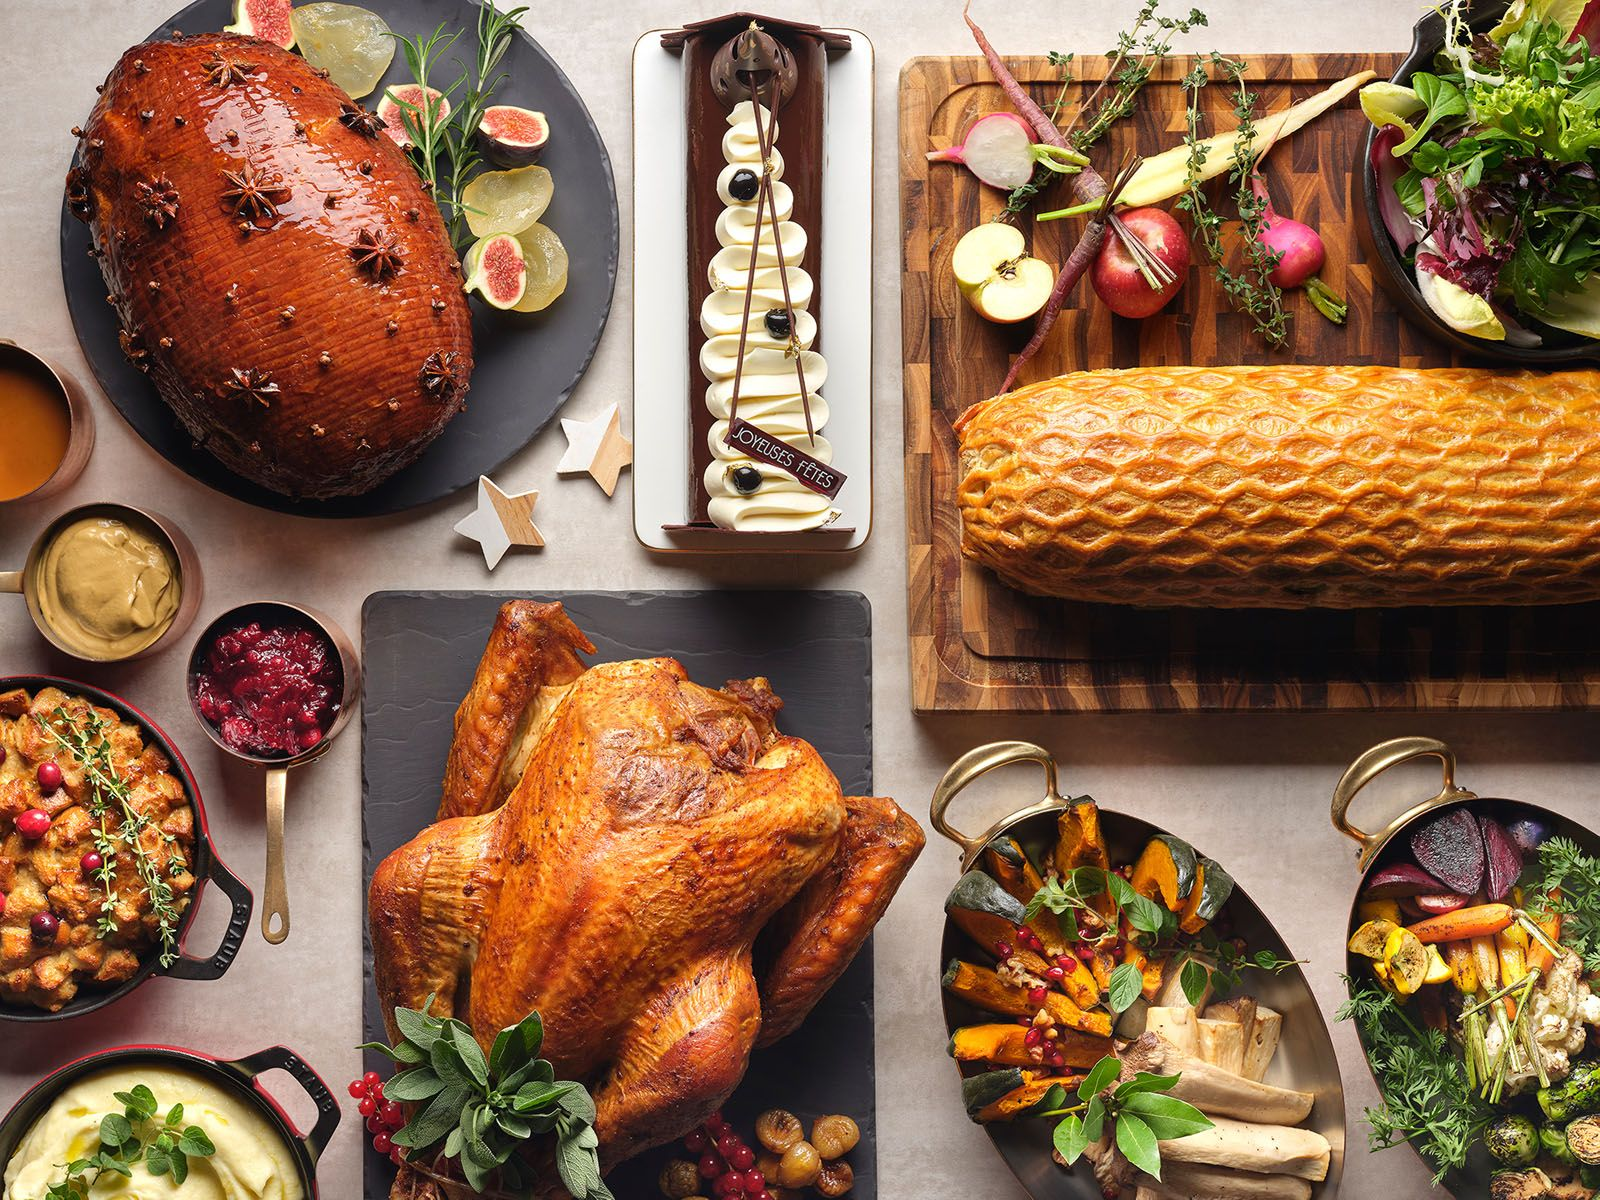 Christmas 2020: The Best Festive Dining Takeaways to Get You into the Holiday Spirit